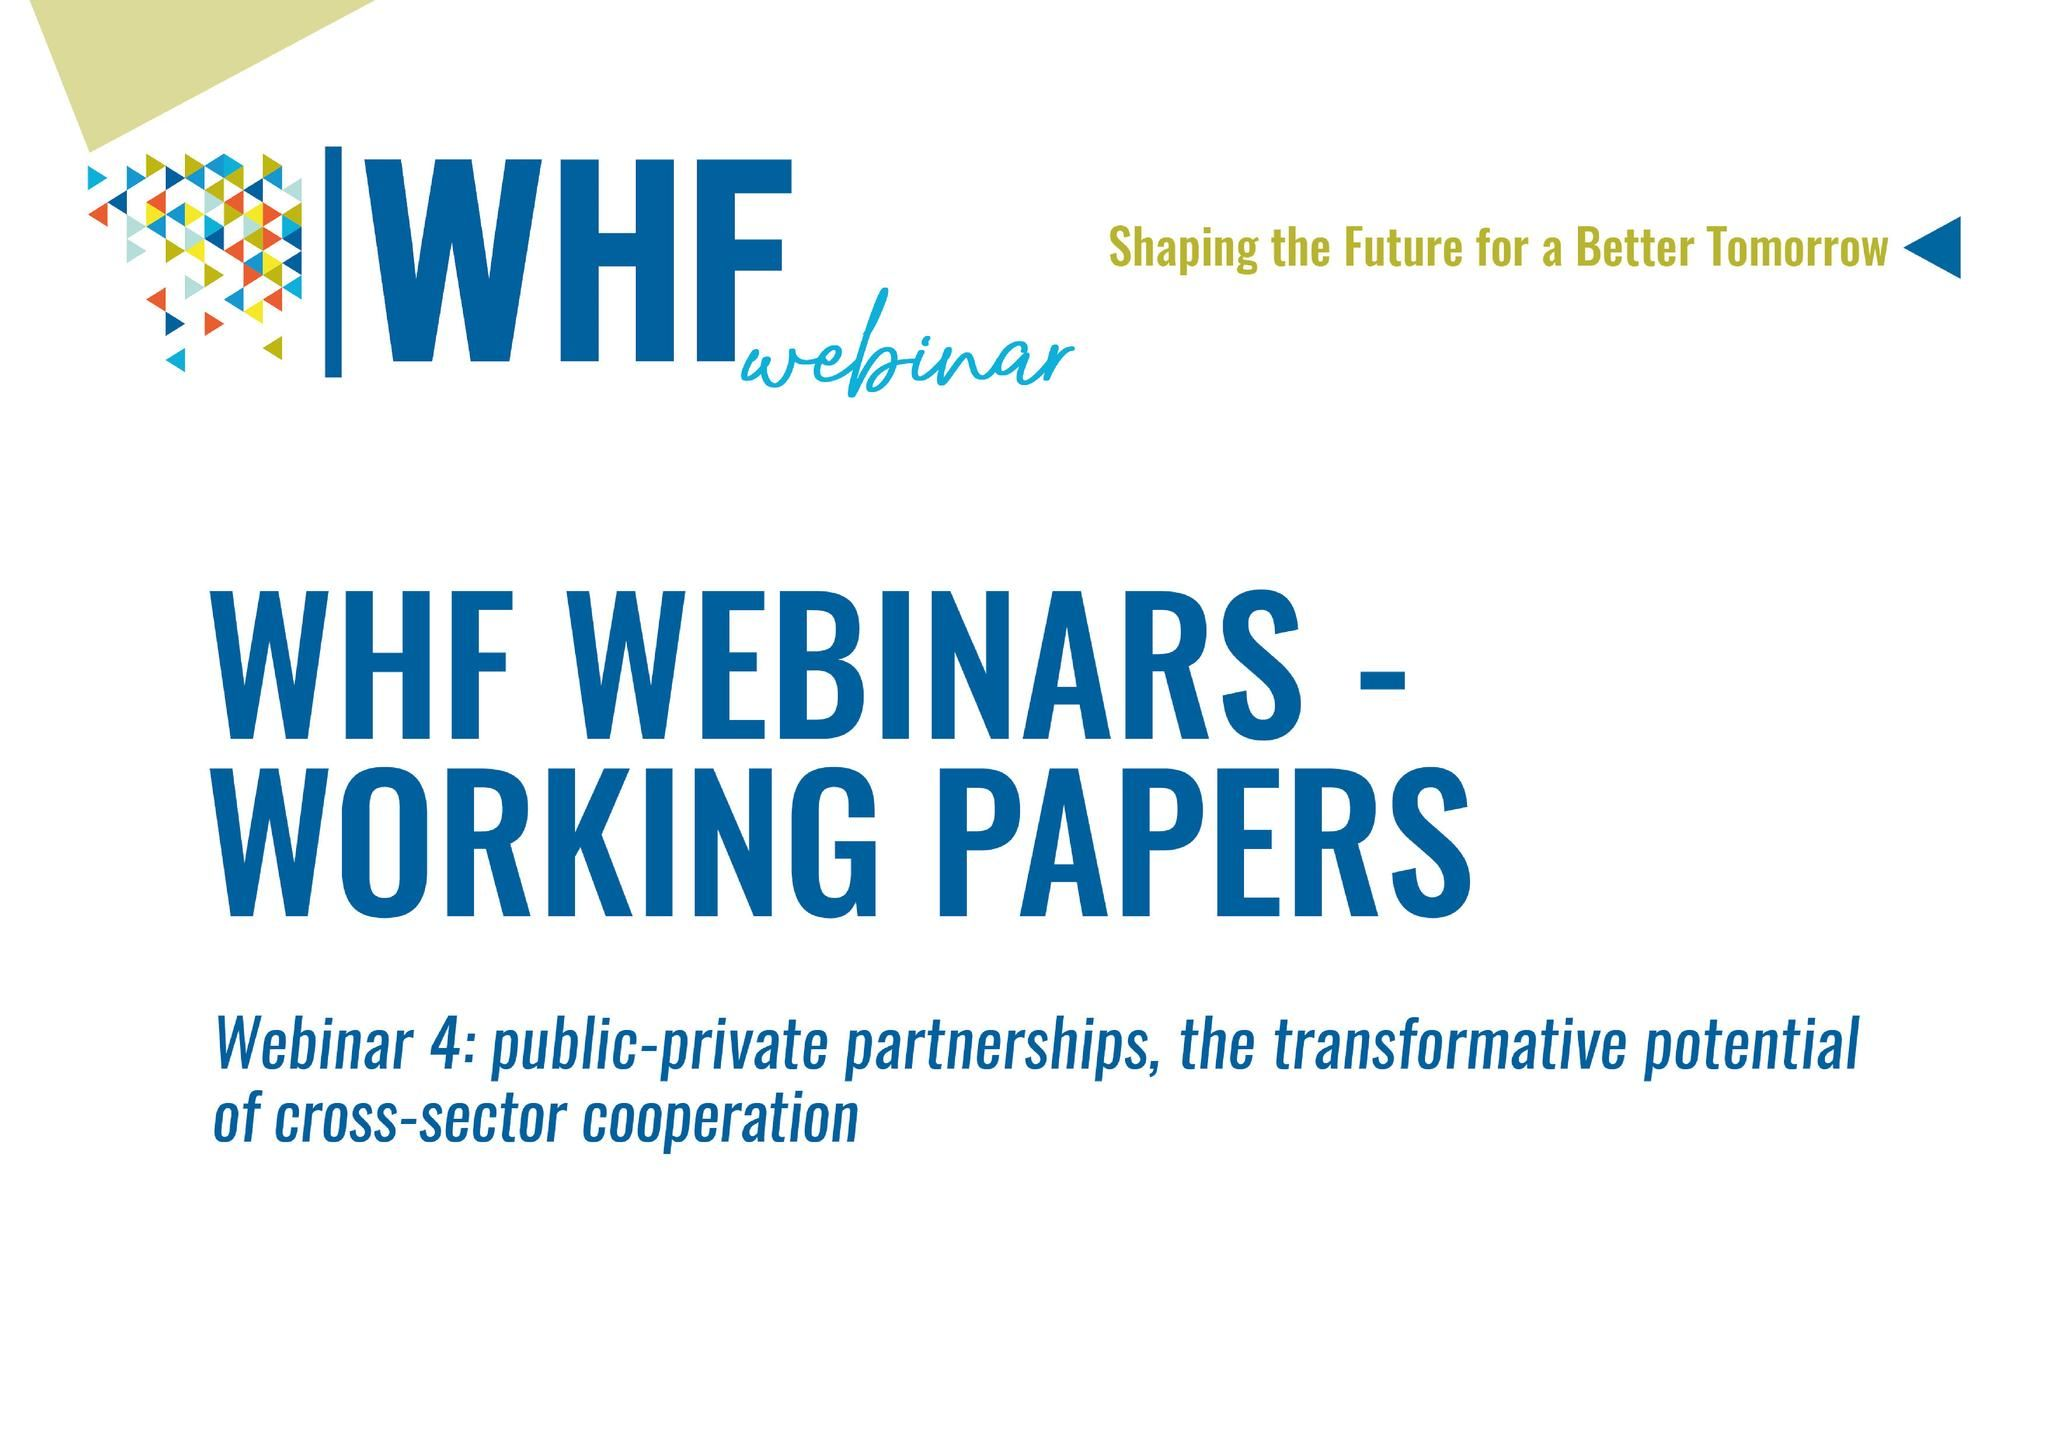 WORKING PAPERS  WHFWebinar 4: P3 and the transformative potential of cross-sector cooperation